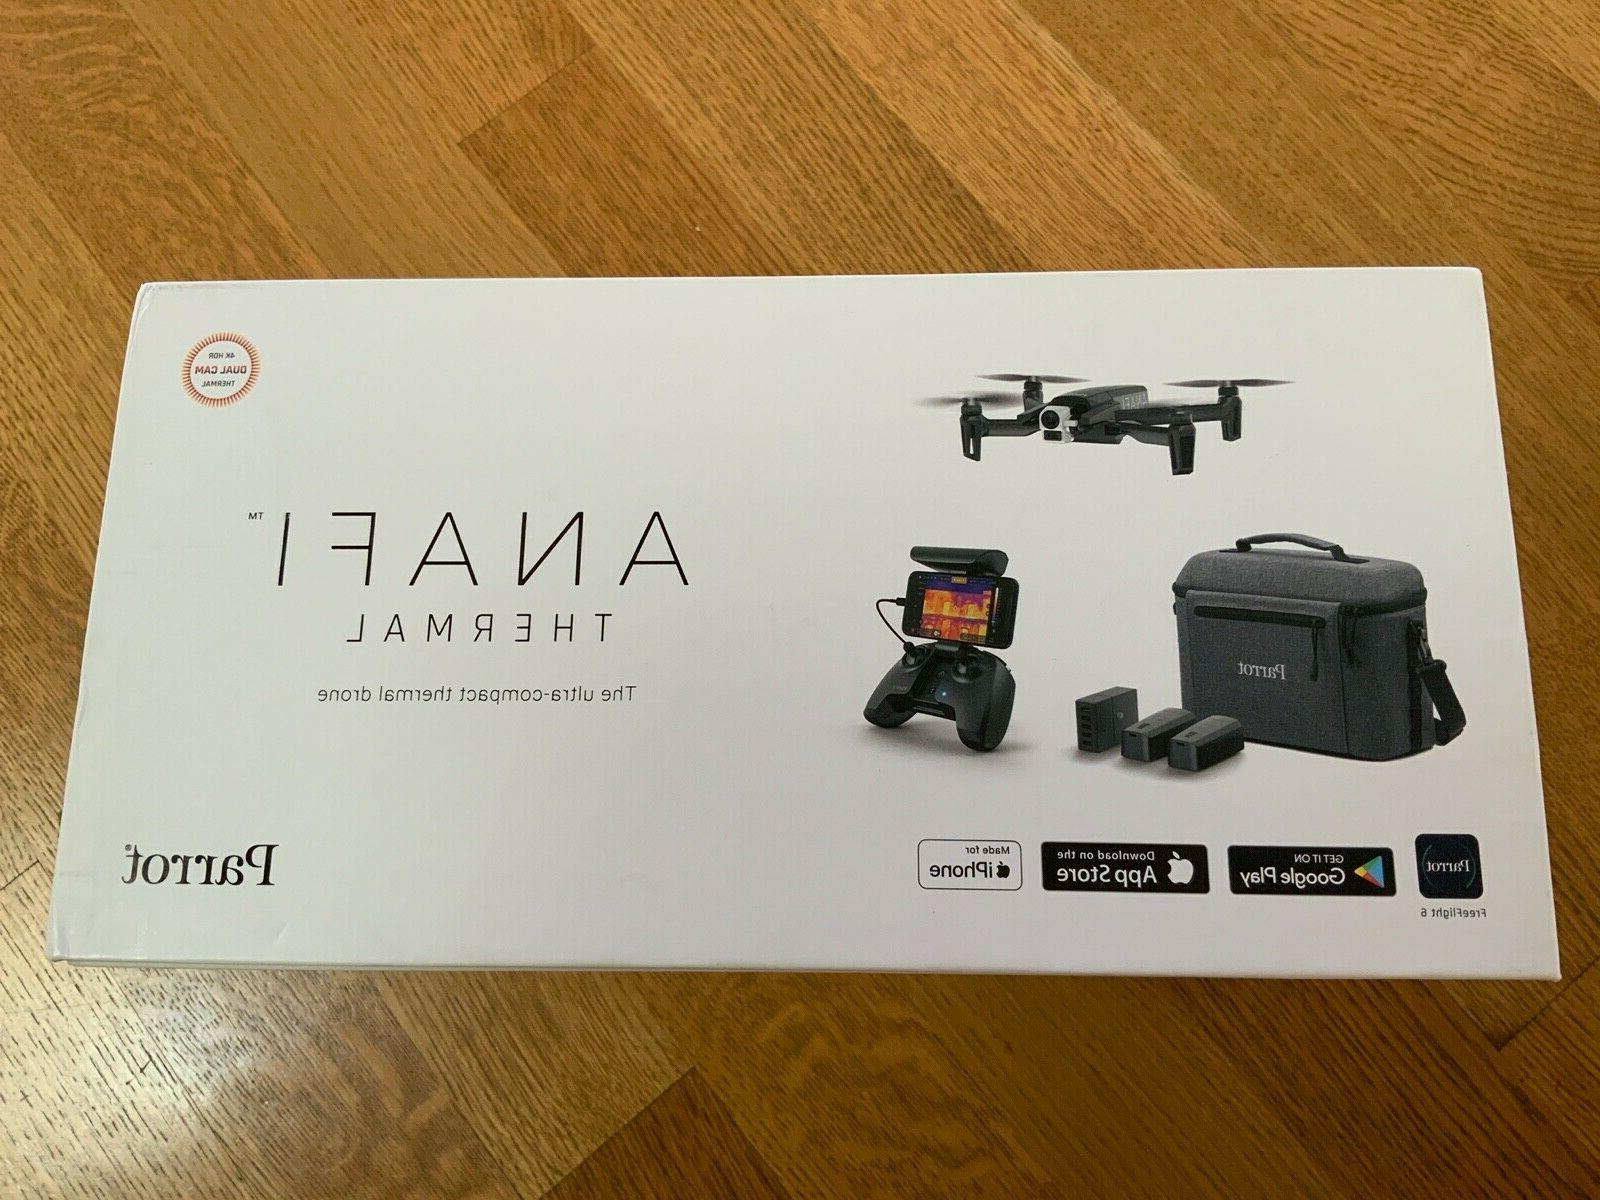 Parrot THERMAL HDR +-90 Dual Camera NEW!